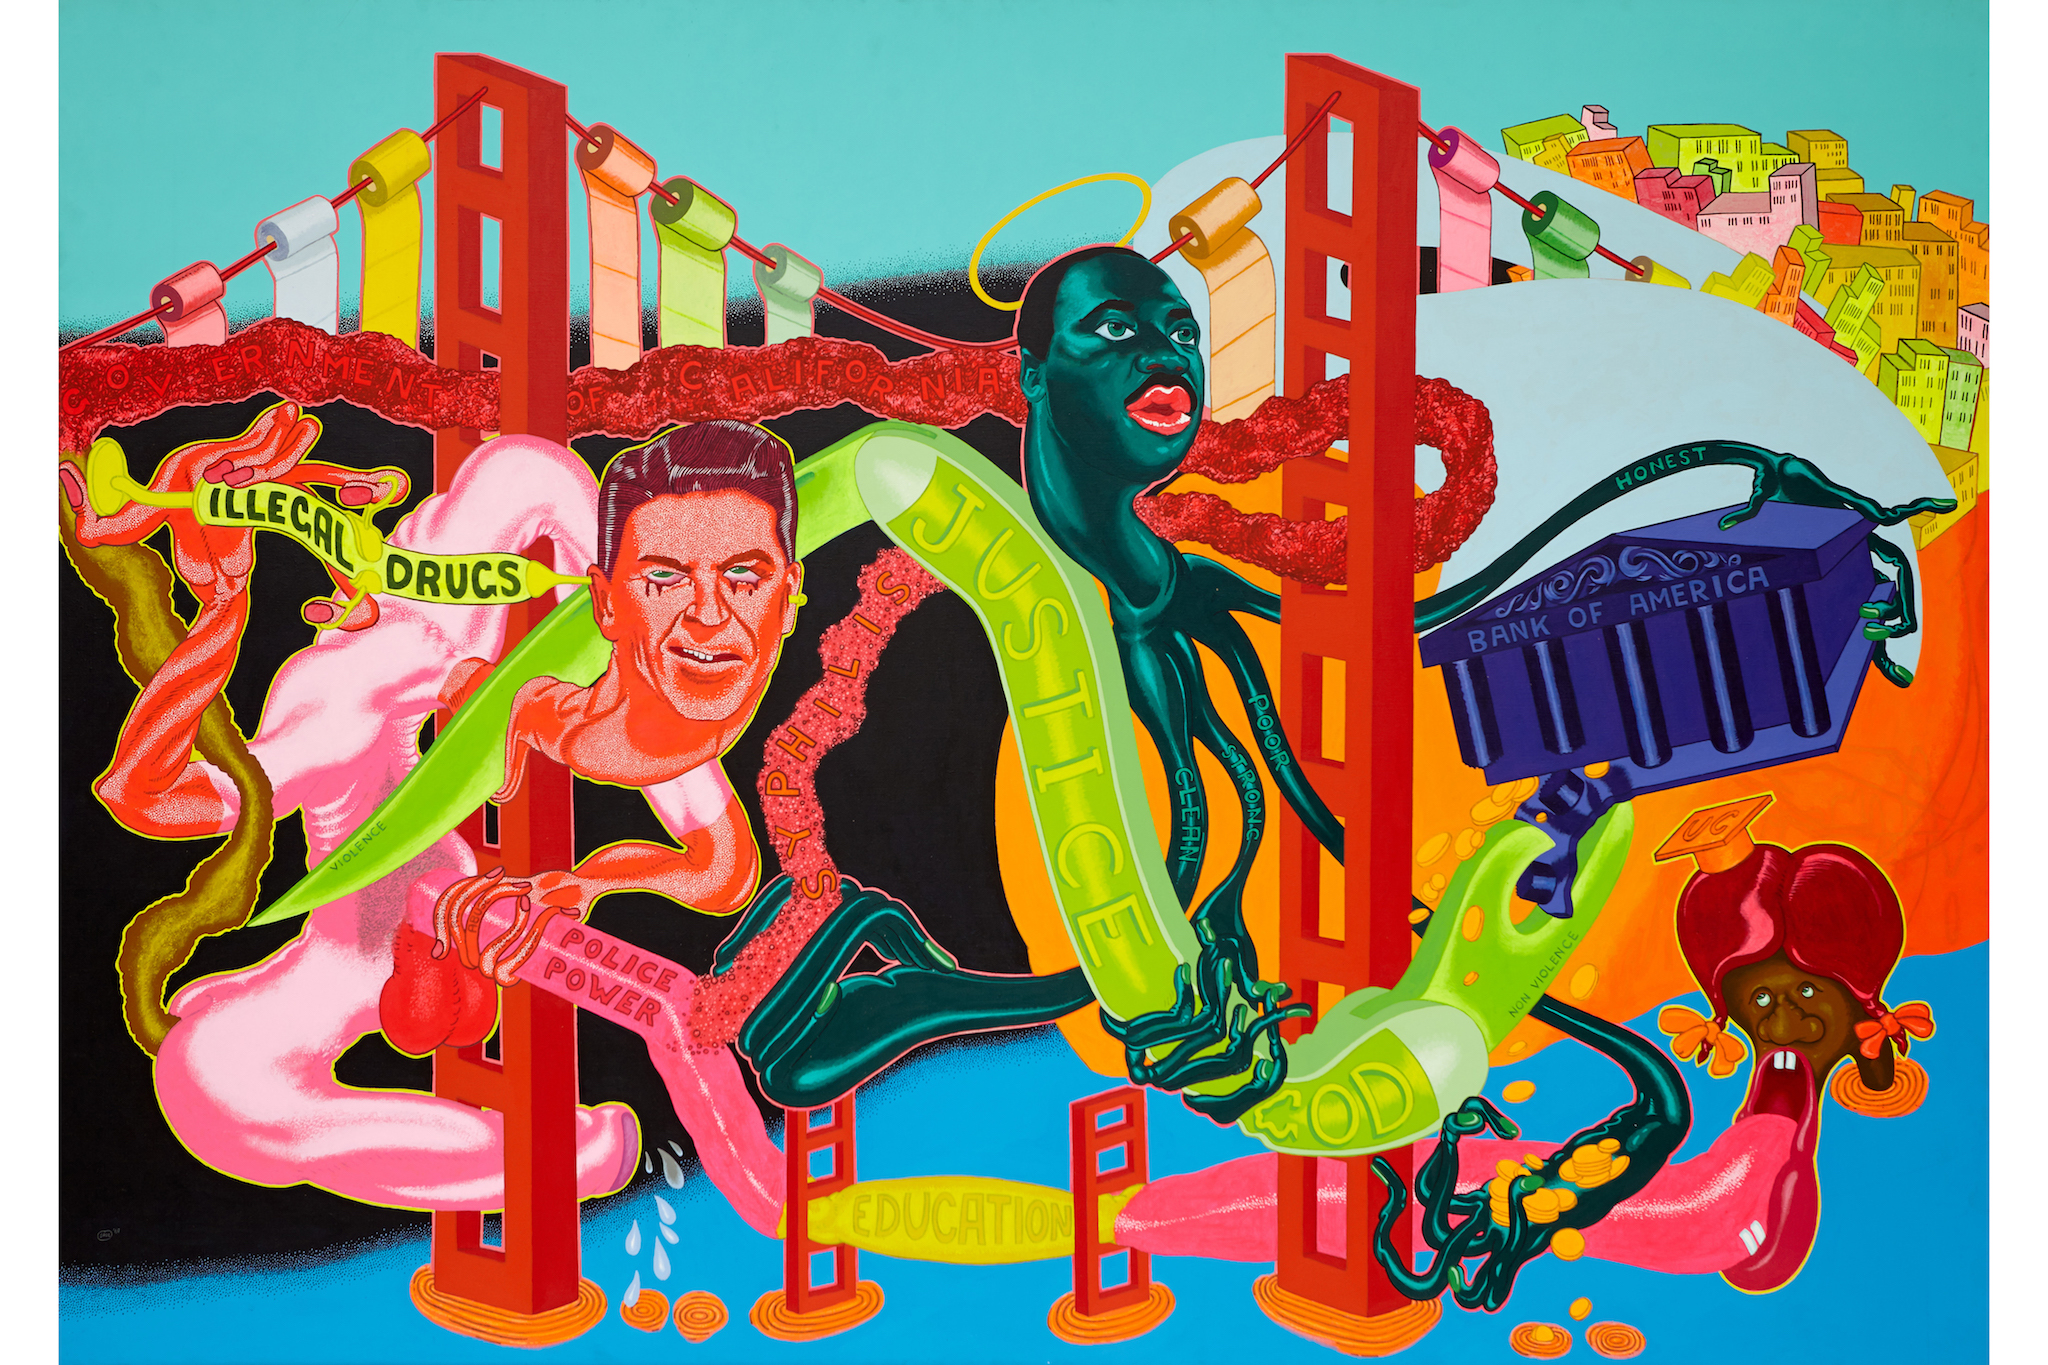 Peter Saul, Government of California, 1969